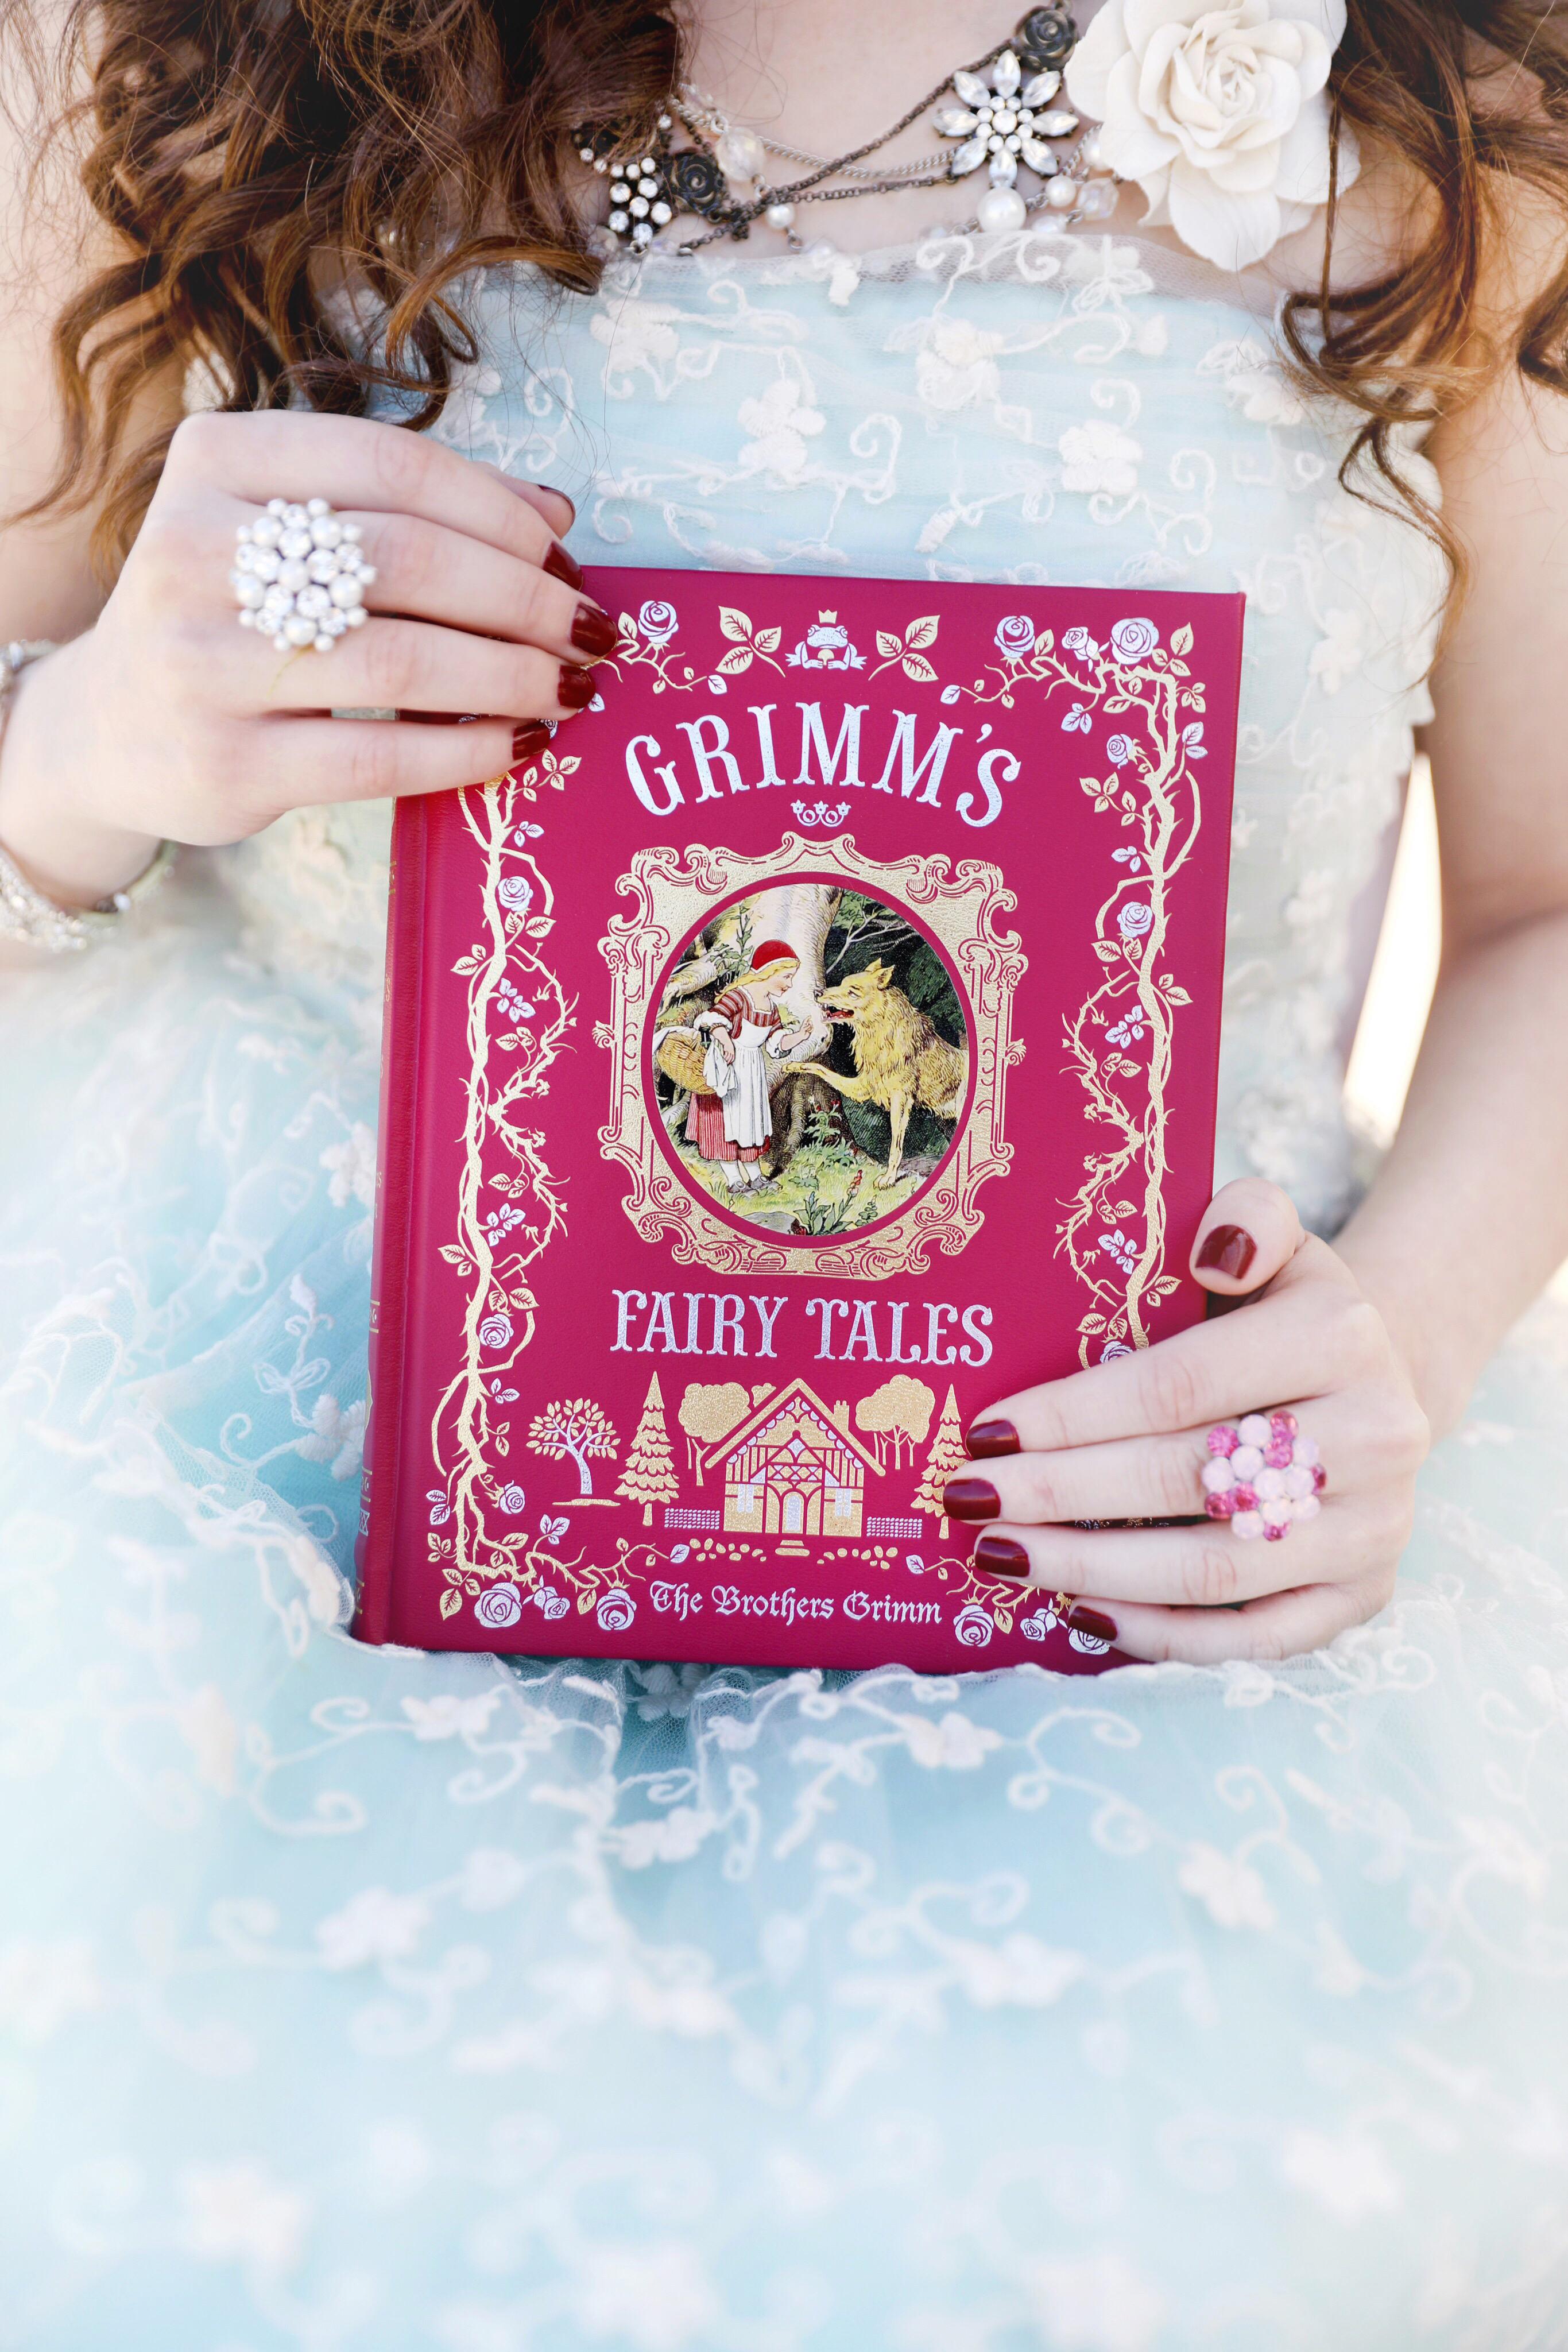 Beautiful Fairytale Books Stunning Editions Of Classic Fairytales